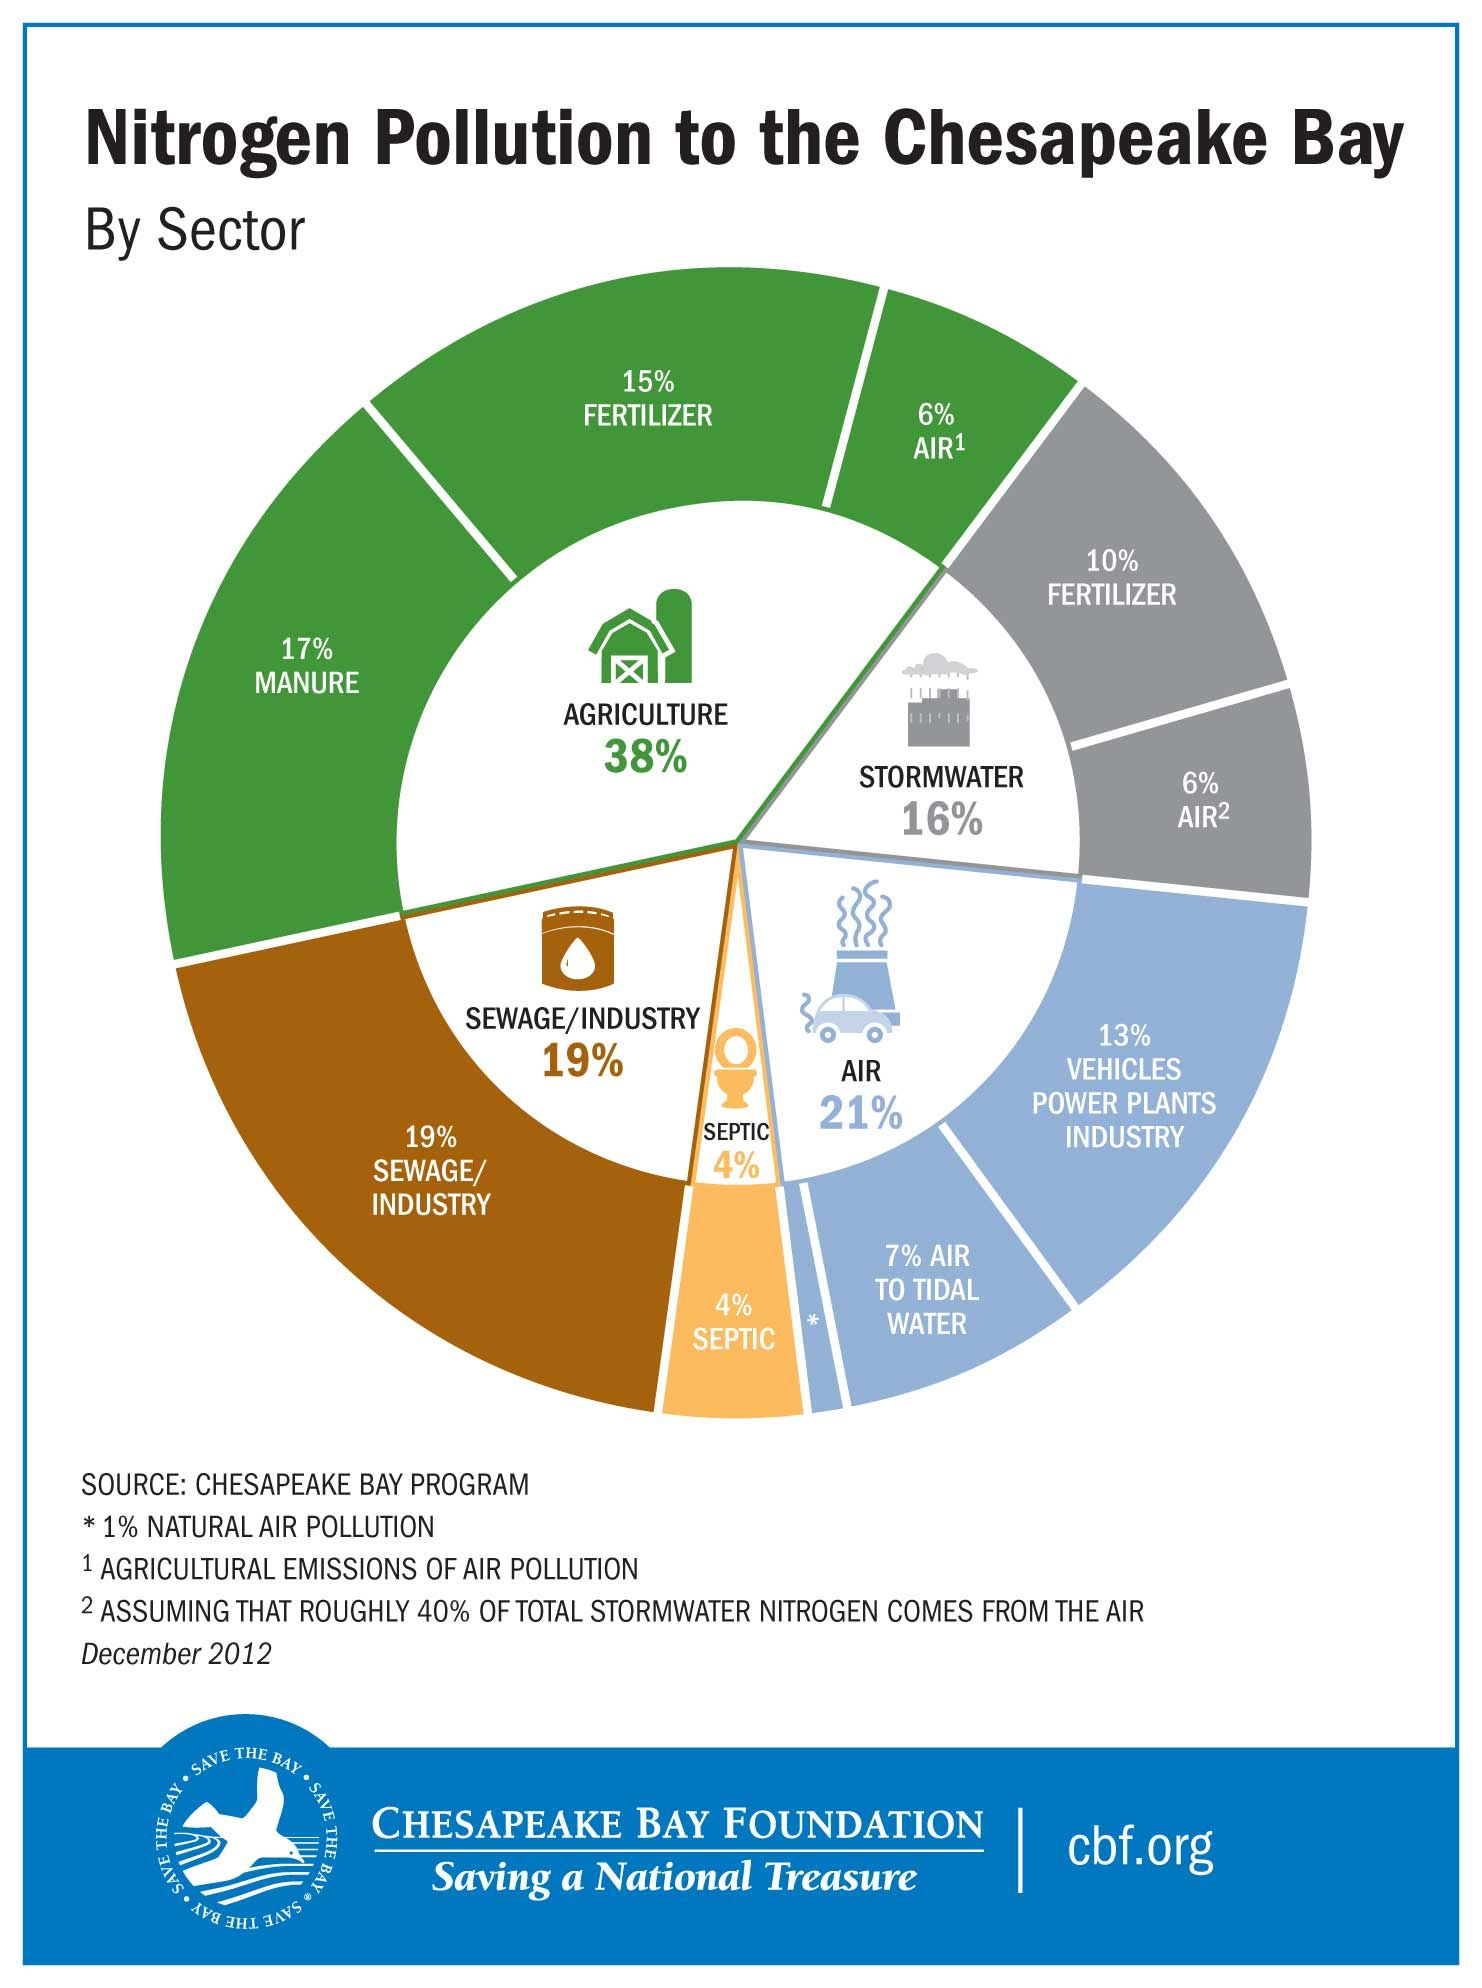 medium resolution of pie chart showing nitrogen pollution to the chesapeake bay by sector